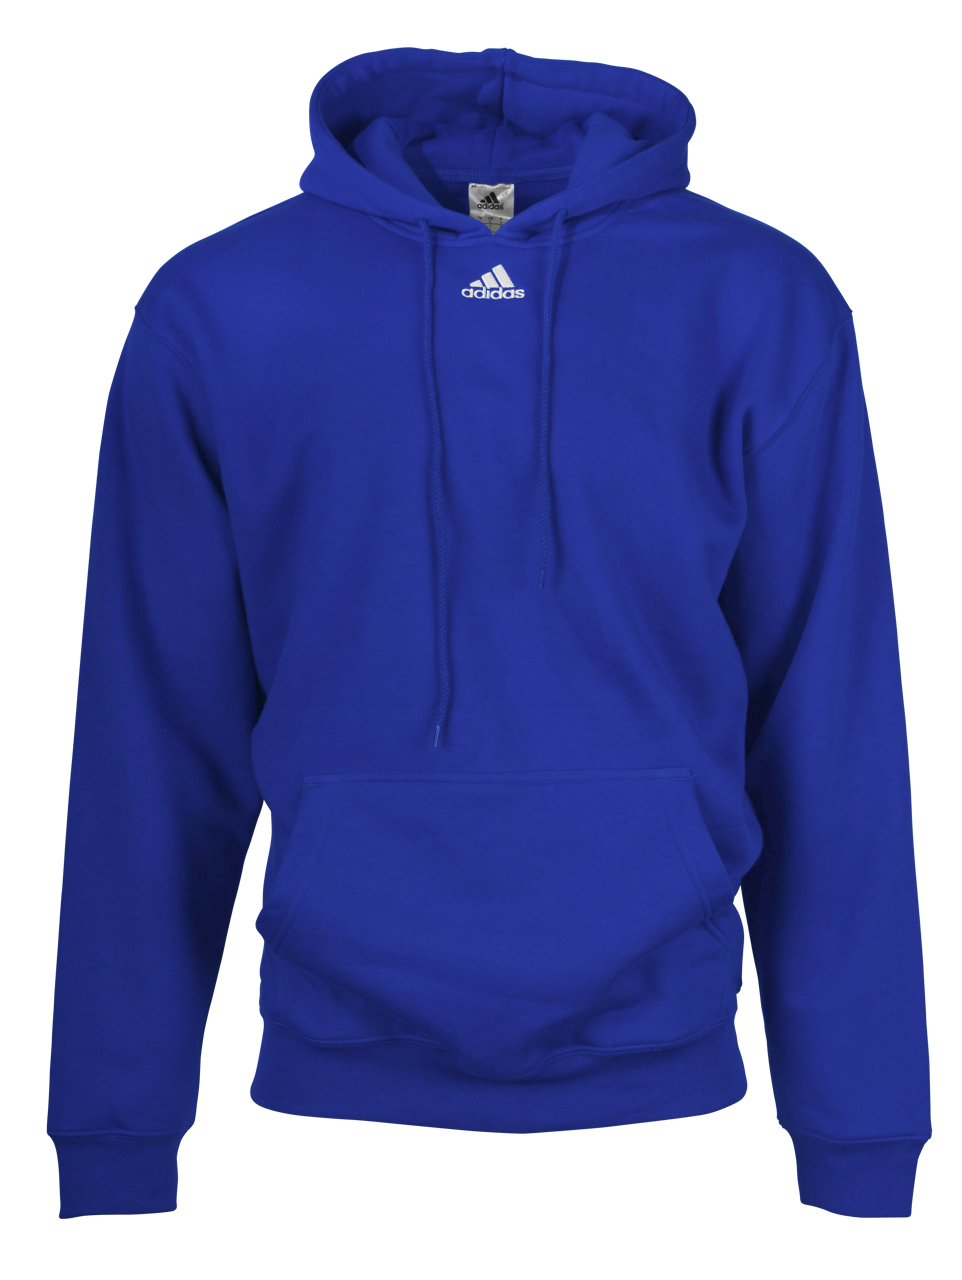 98cc4f7ae ADIDAS Adult Team Fleece Hoodie | Custom Team Hoodies | Custom ...